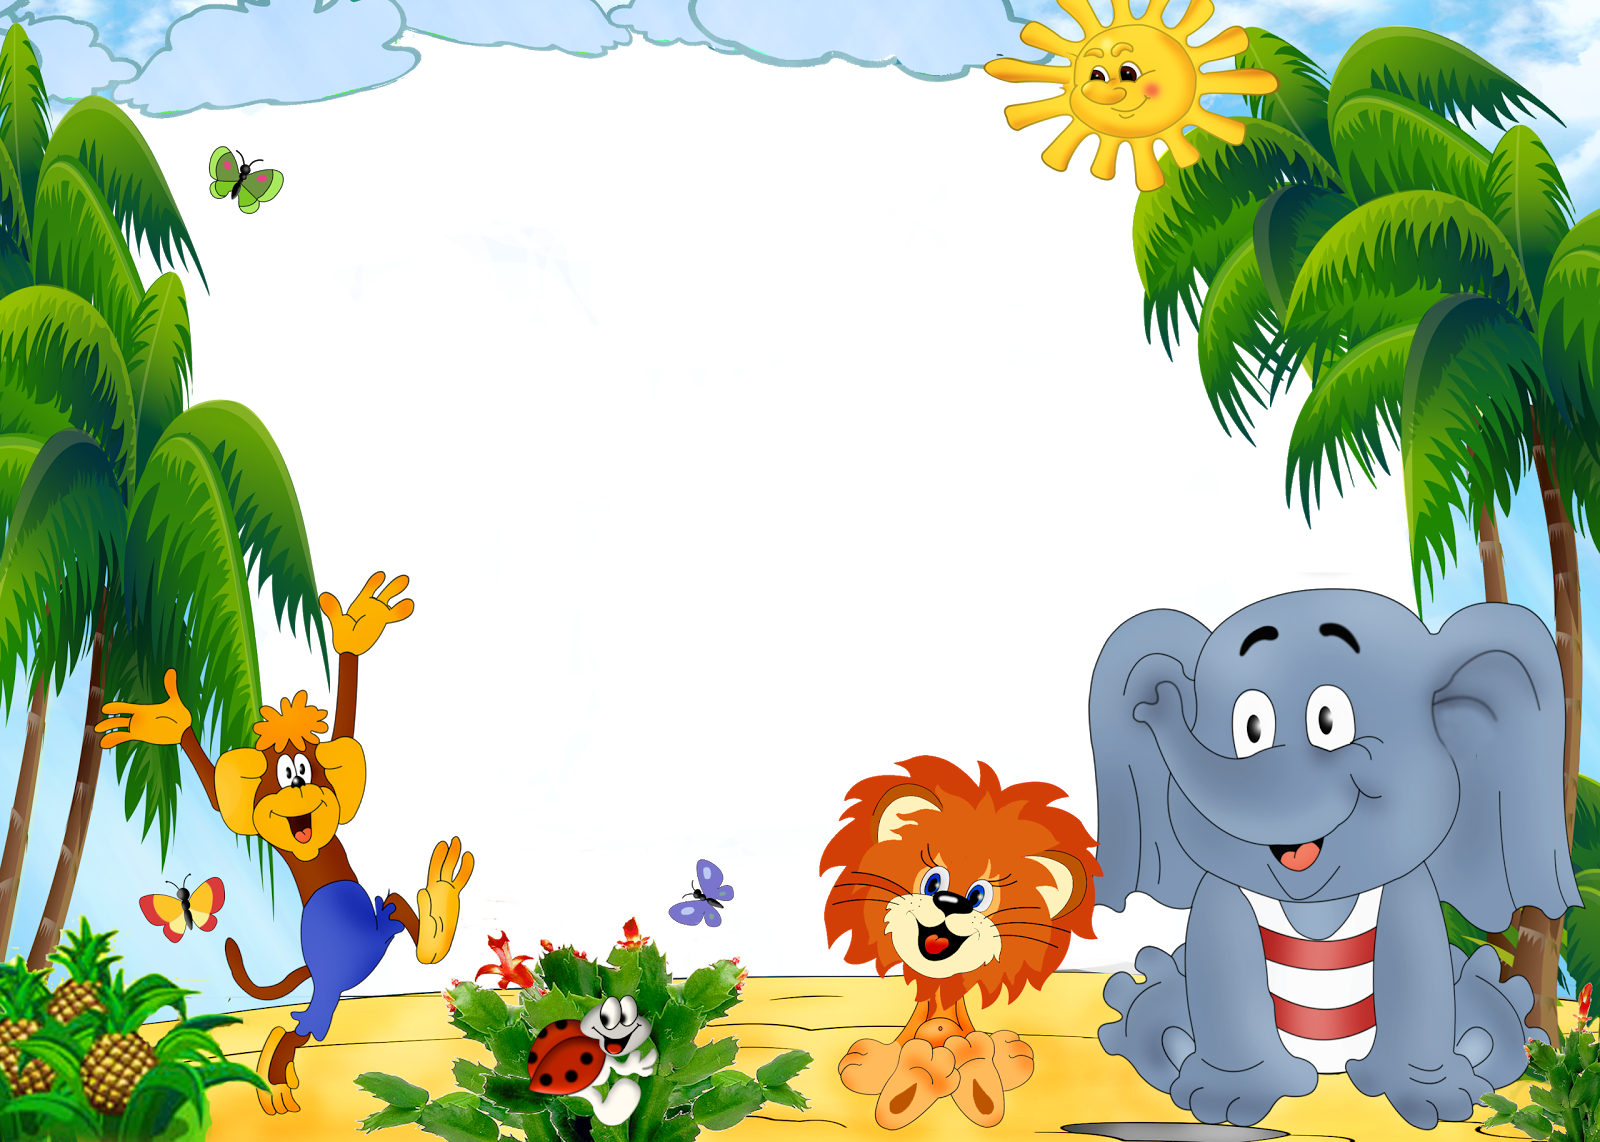 Children Zoo Photoshop Background Png image #24703